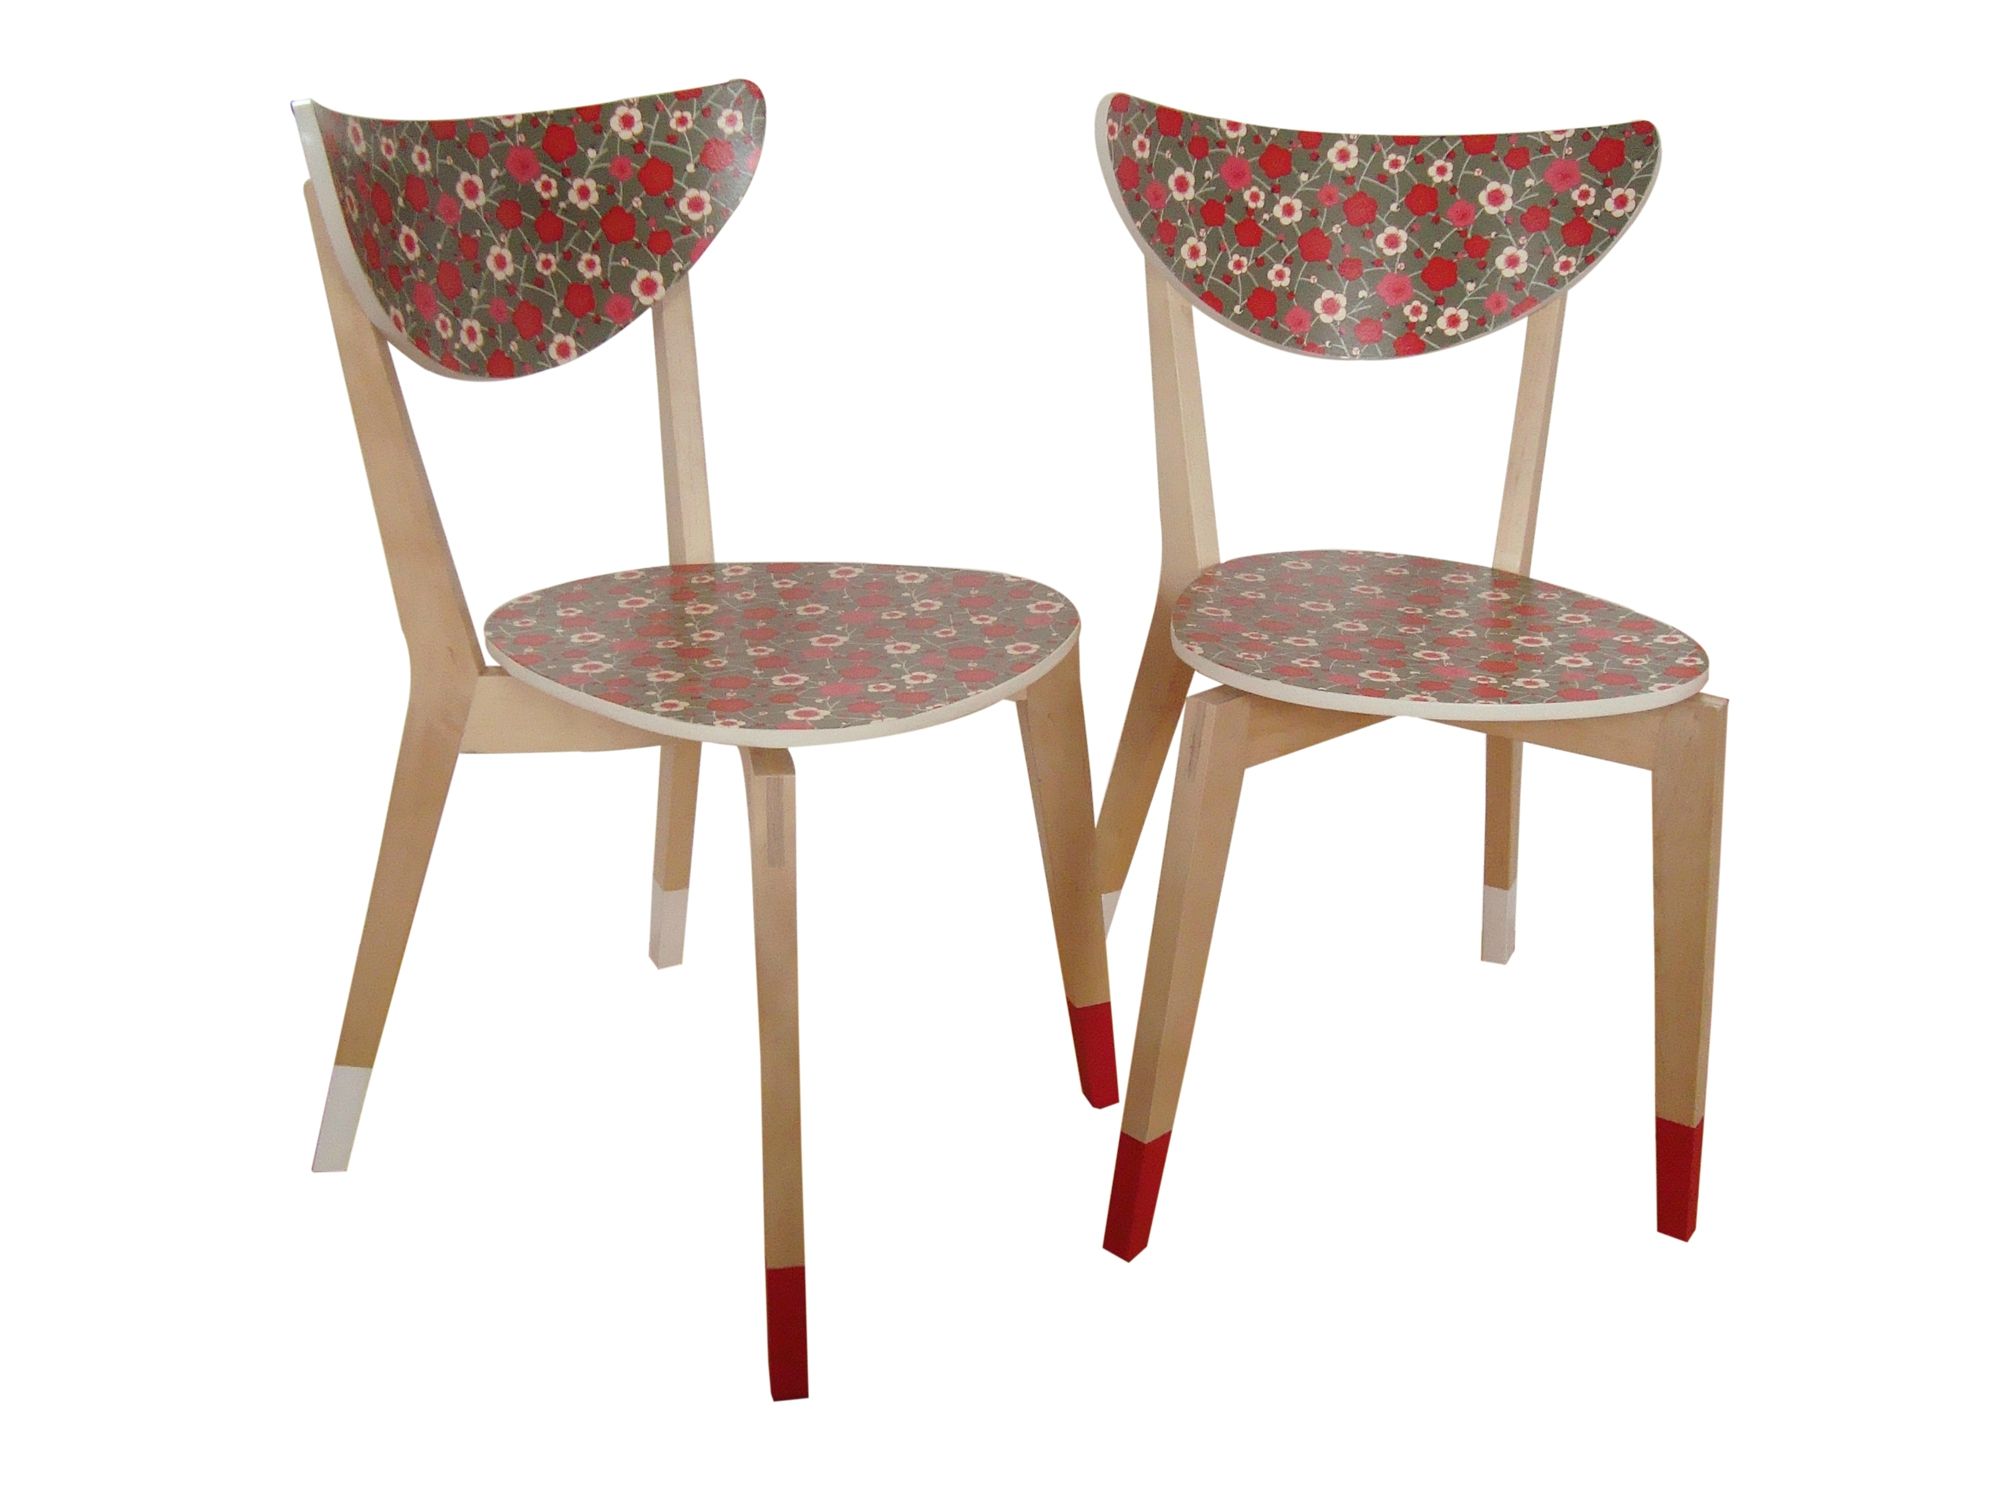 Chaises IKEA - collage papier washi